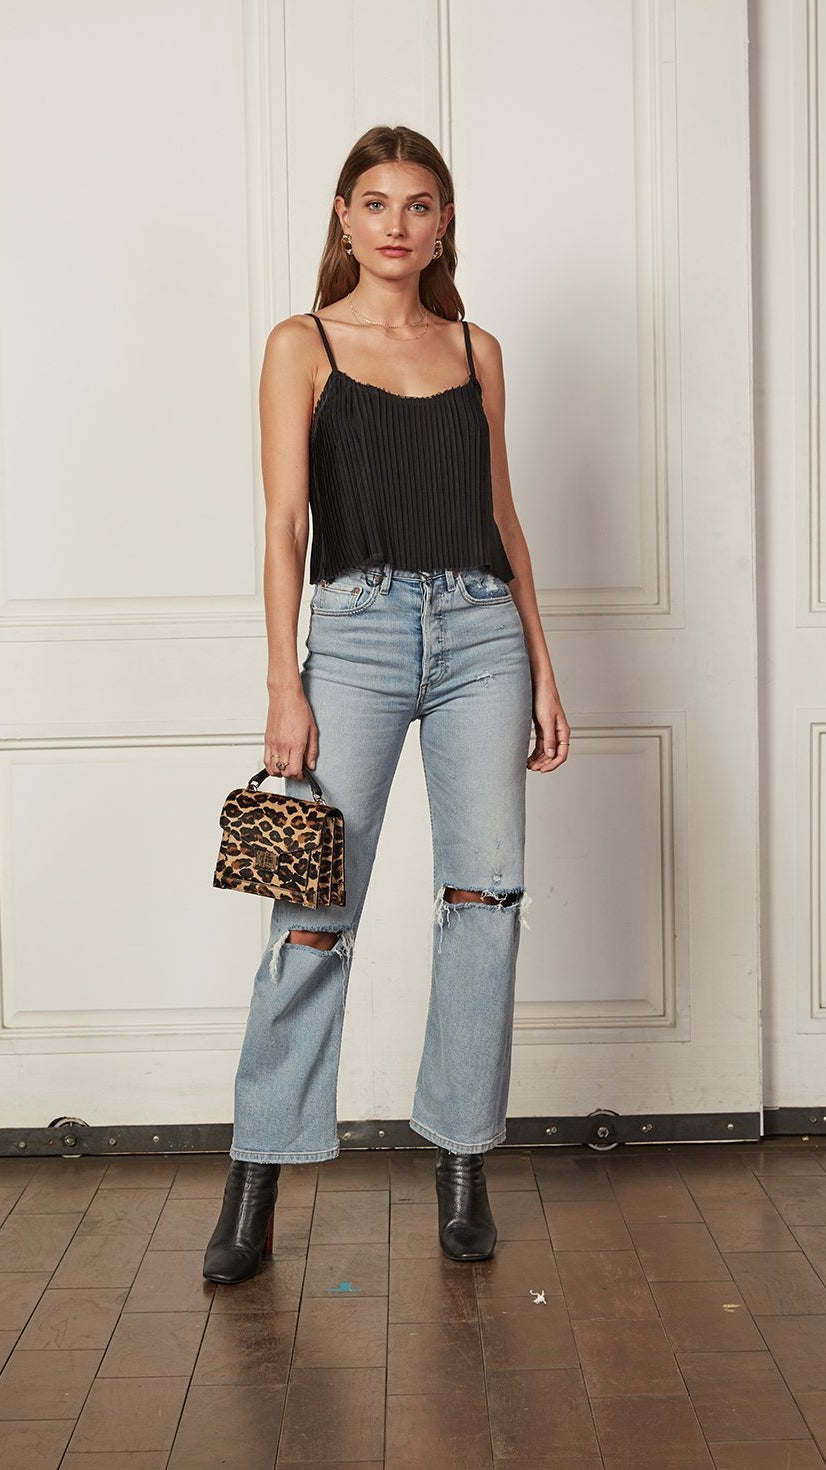 The Mikey Wide Leg in The Blue Angel by Boyish Jeans